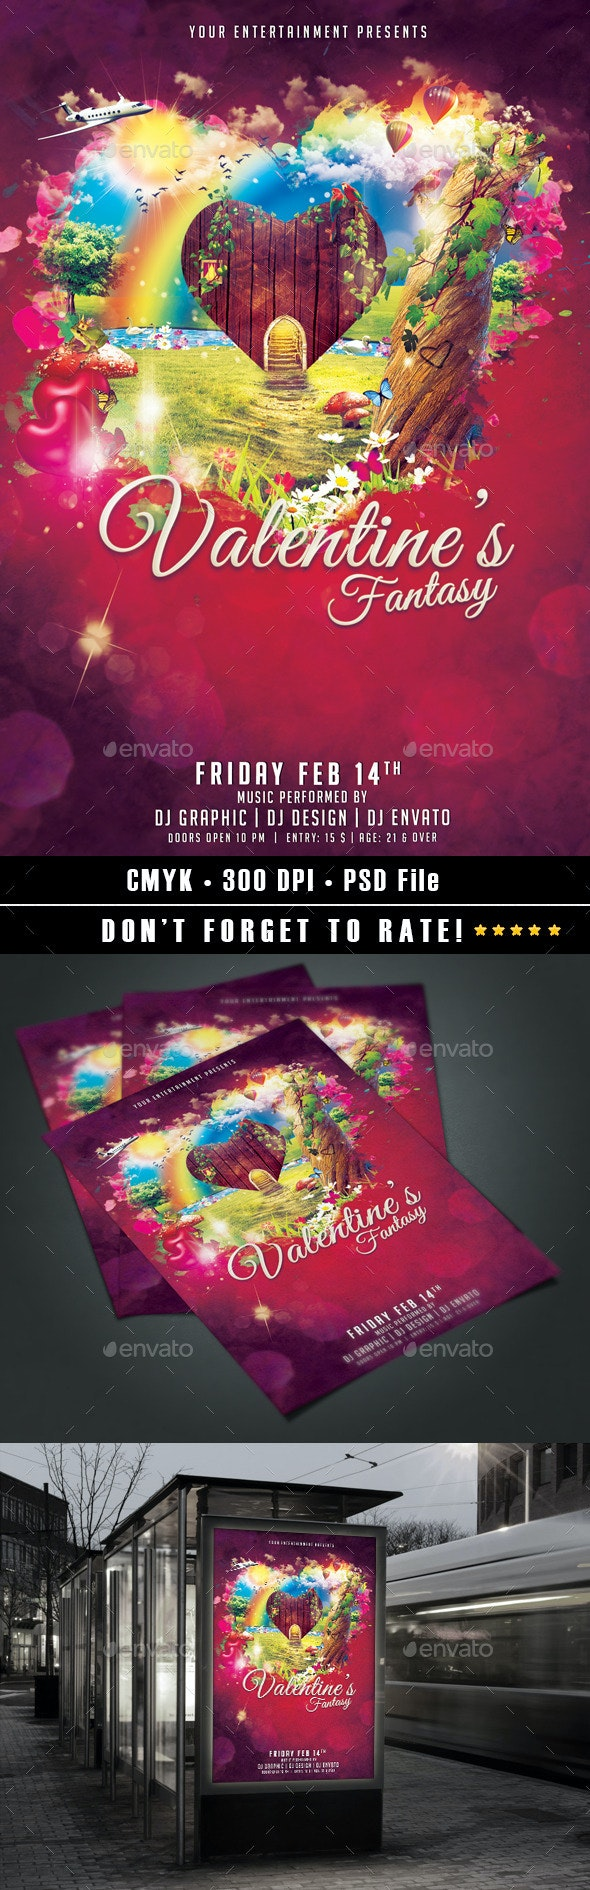 Valentine's Fantasy Flyer - Events Flyers